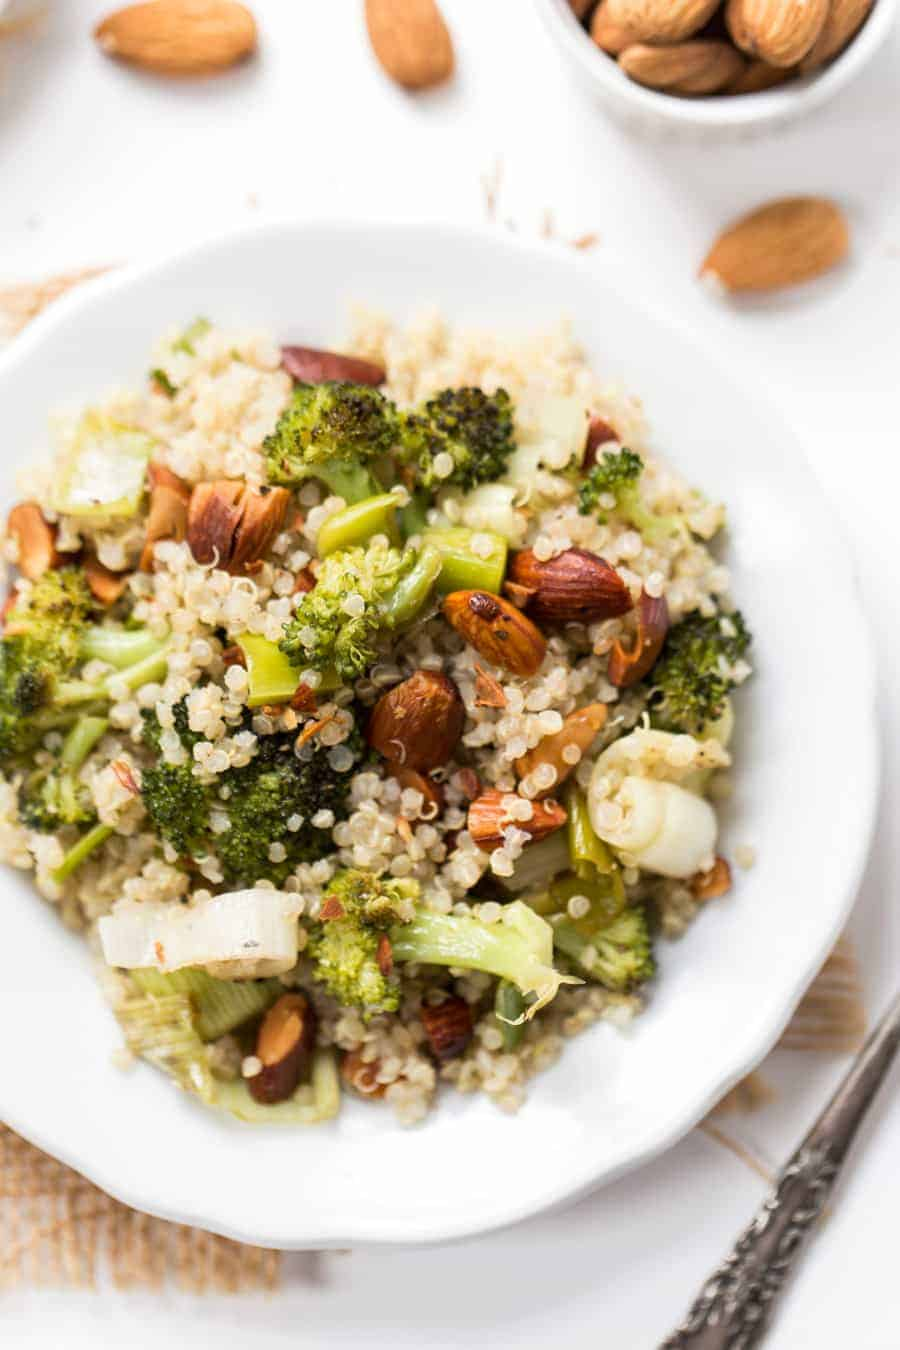 roasted leek & broccoli quinoa salad